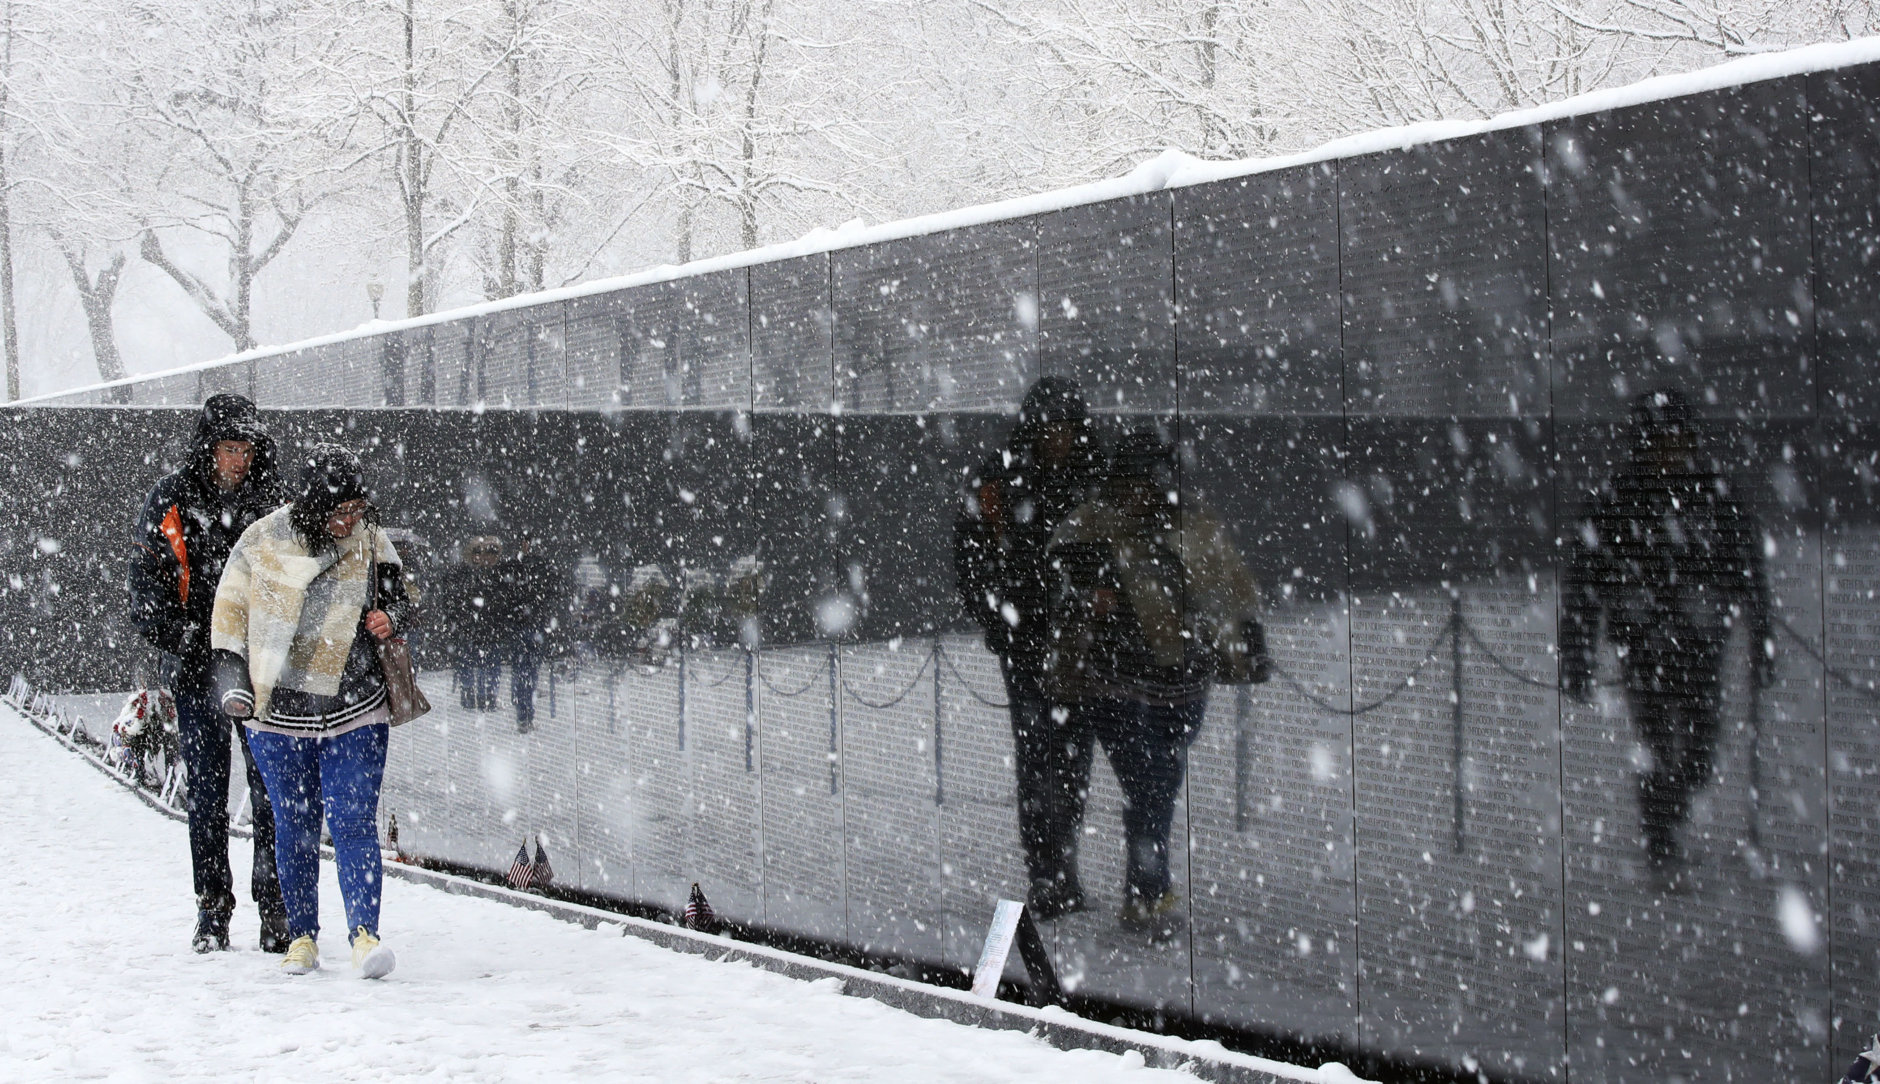 The Vietnam Veterans Memorial on the National Mall in Washington during the Spring snow storm, Wednesday, March 21, 2018. (AP Photo/Manuel Balce Ceneta)